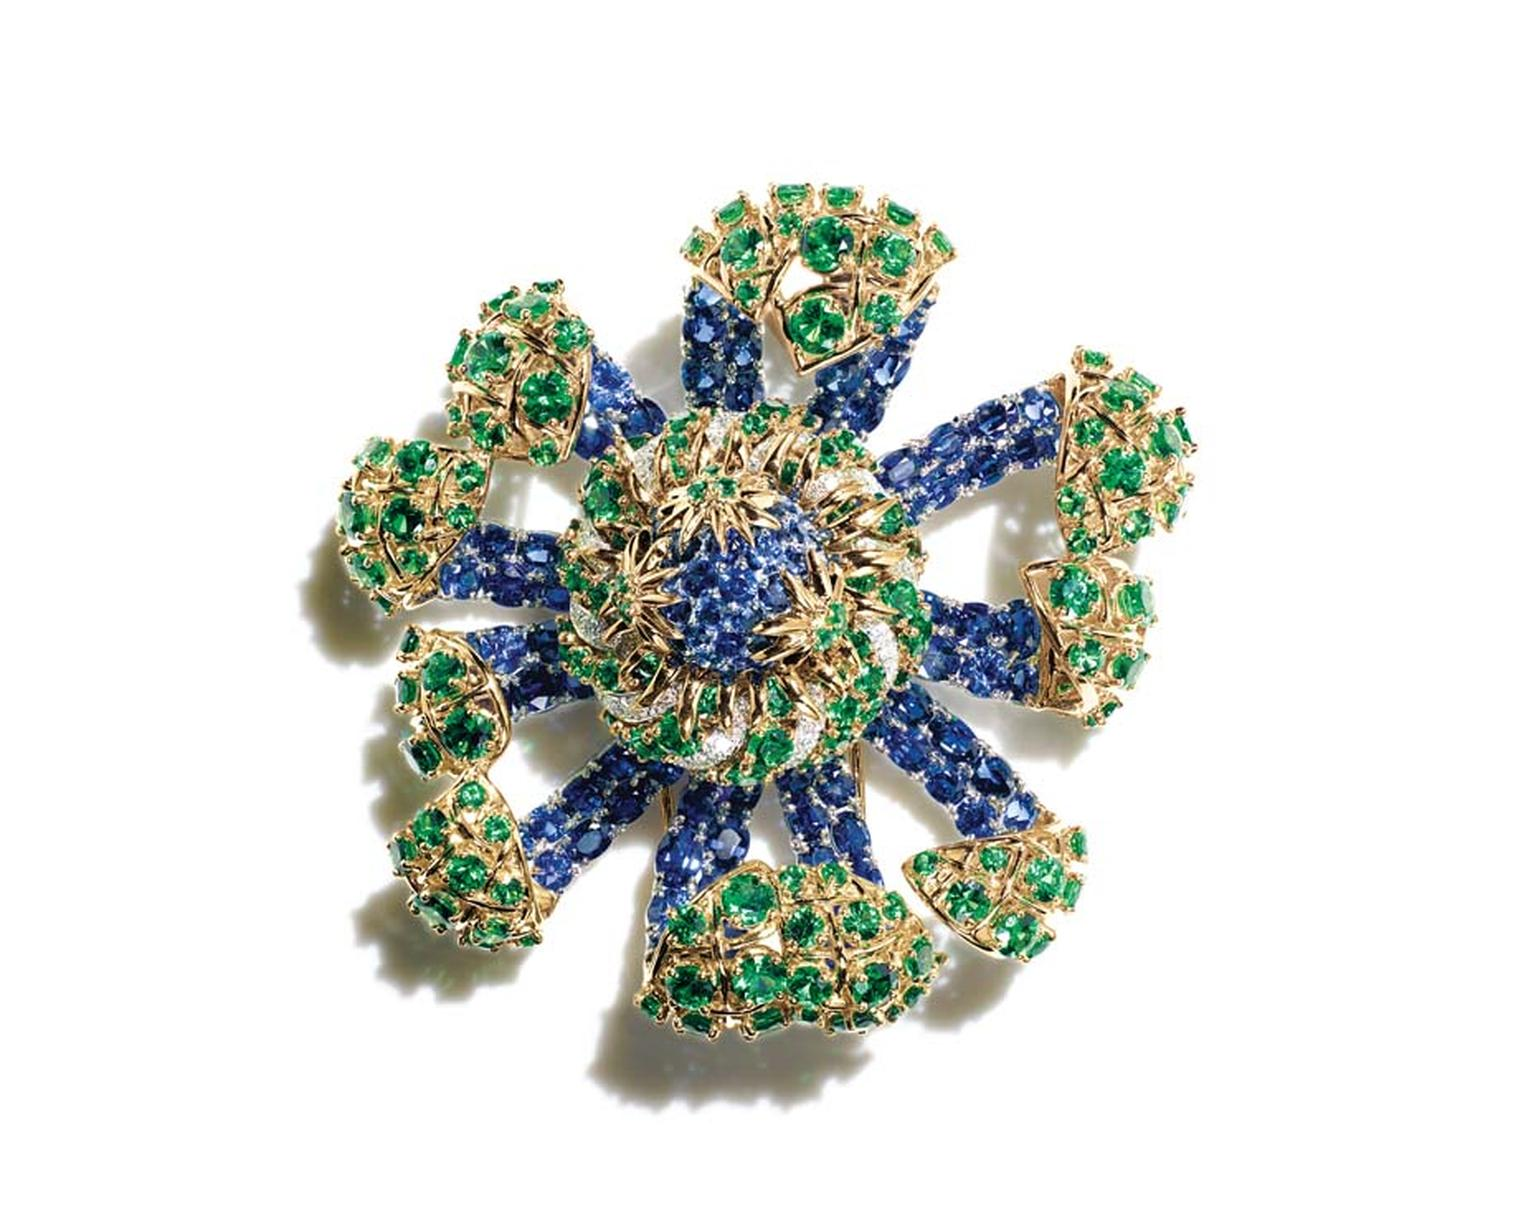 Jean Schlumberger for Tiffany sea anemone clip with sapphires, tsavorites and diamonds in gold and platinum, from the new Blue Book collection.